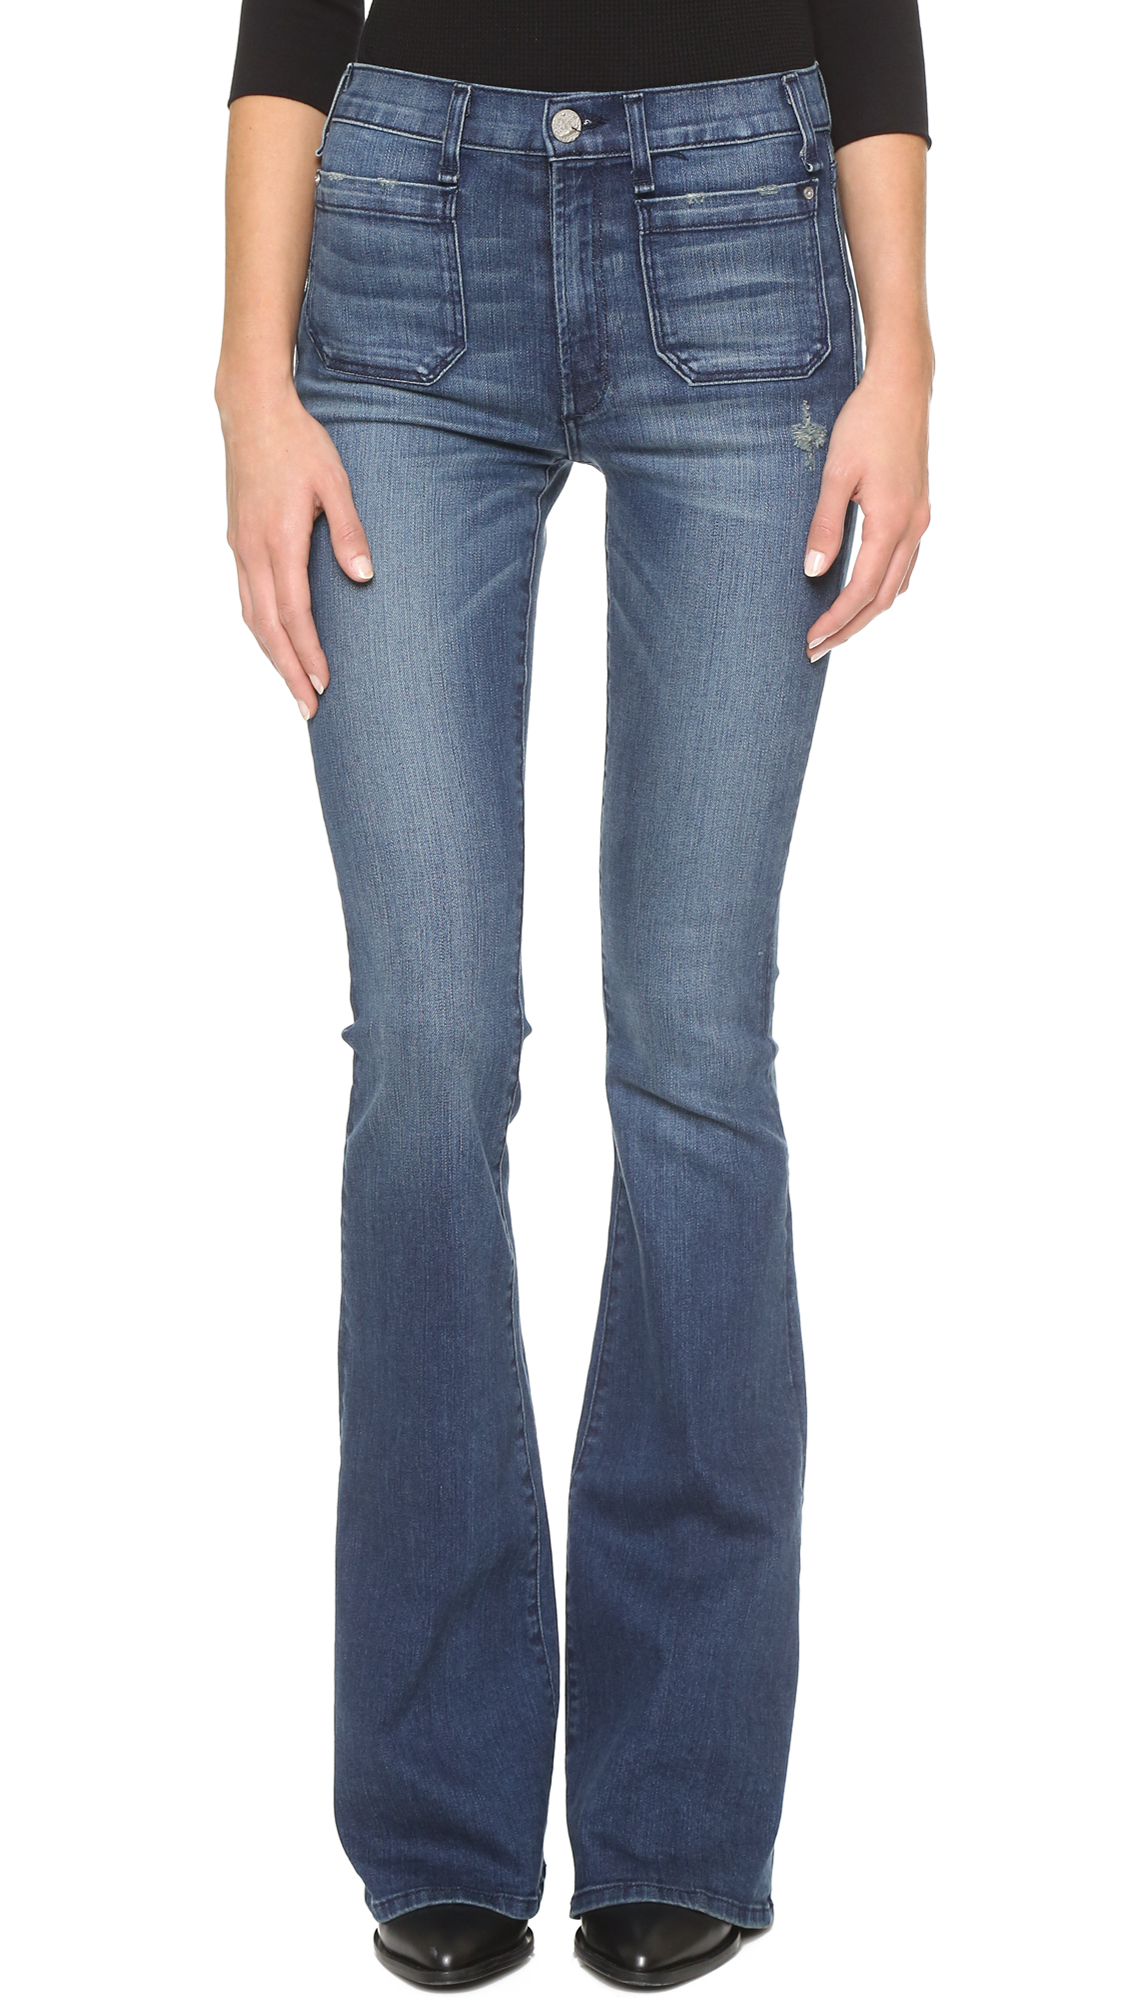 McGuire Denim The Principle Mid Rise Flare Jeans | 15% off first ...